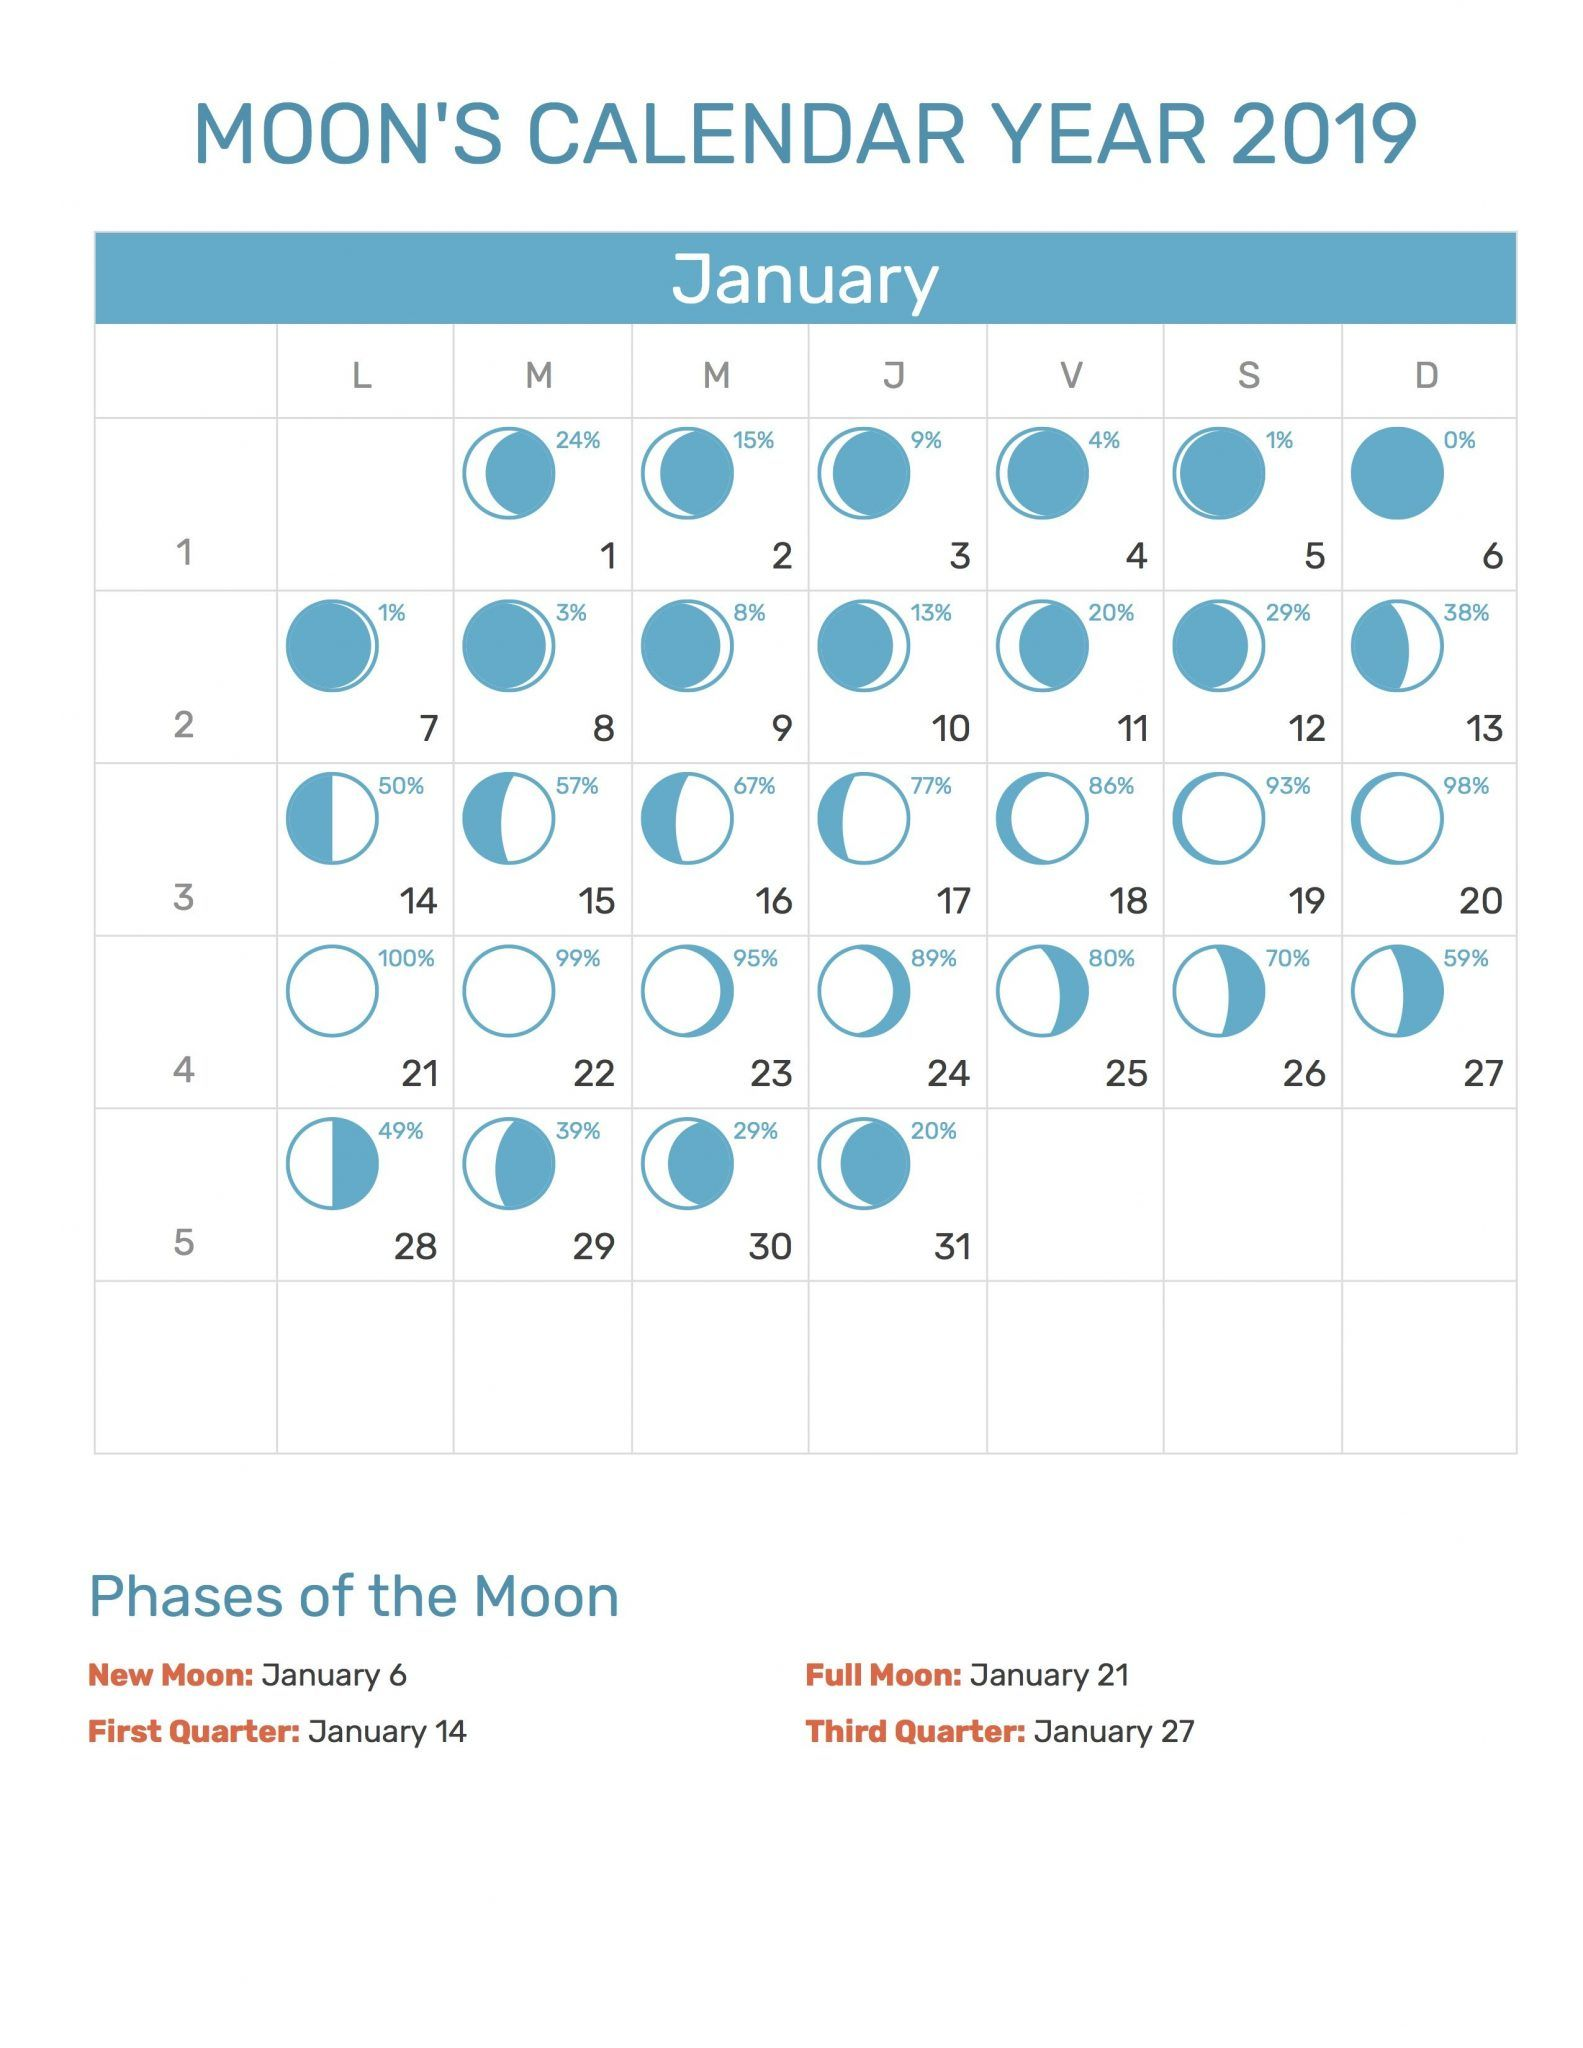 January 2019 Calendar Moons January 2019 Calendar Moon Phases | 20+ January 2019 Calendar PDF